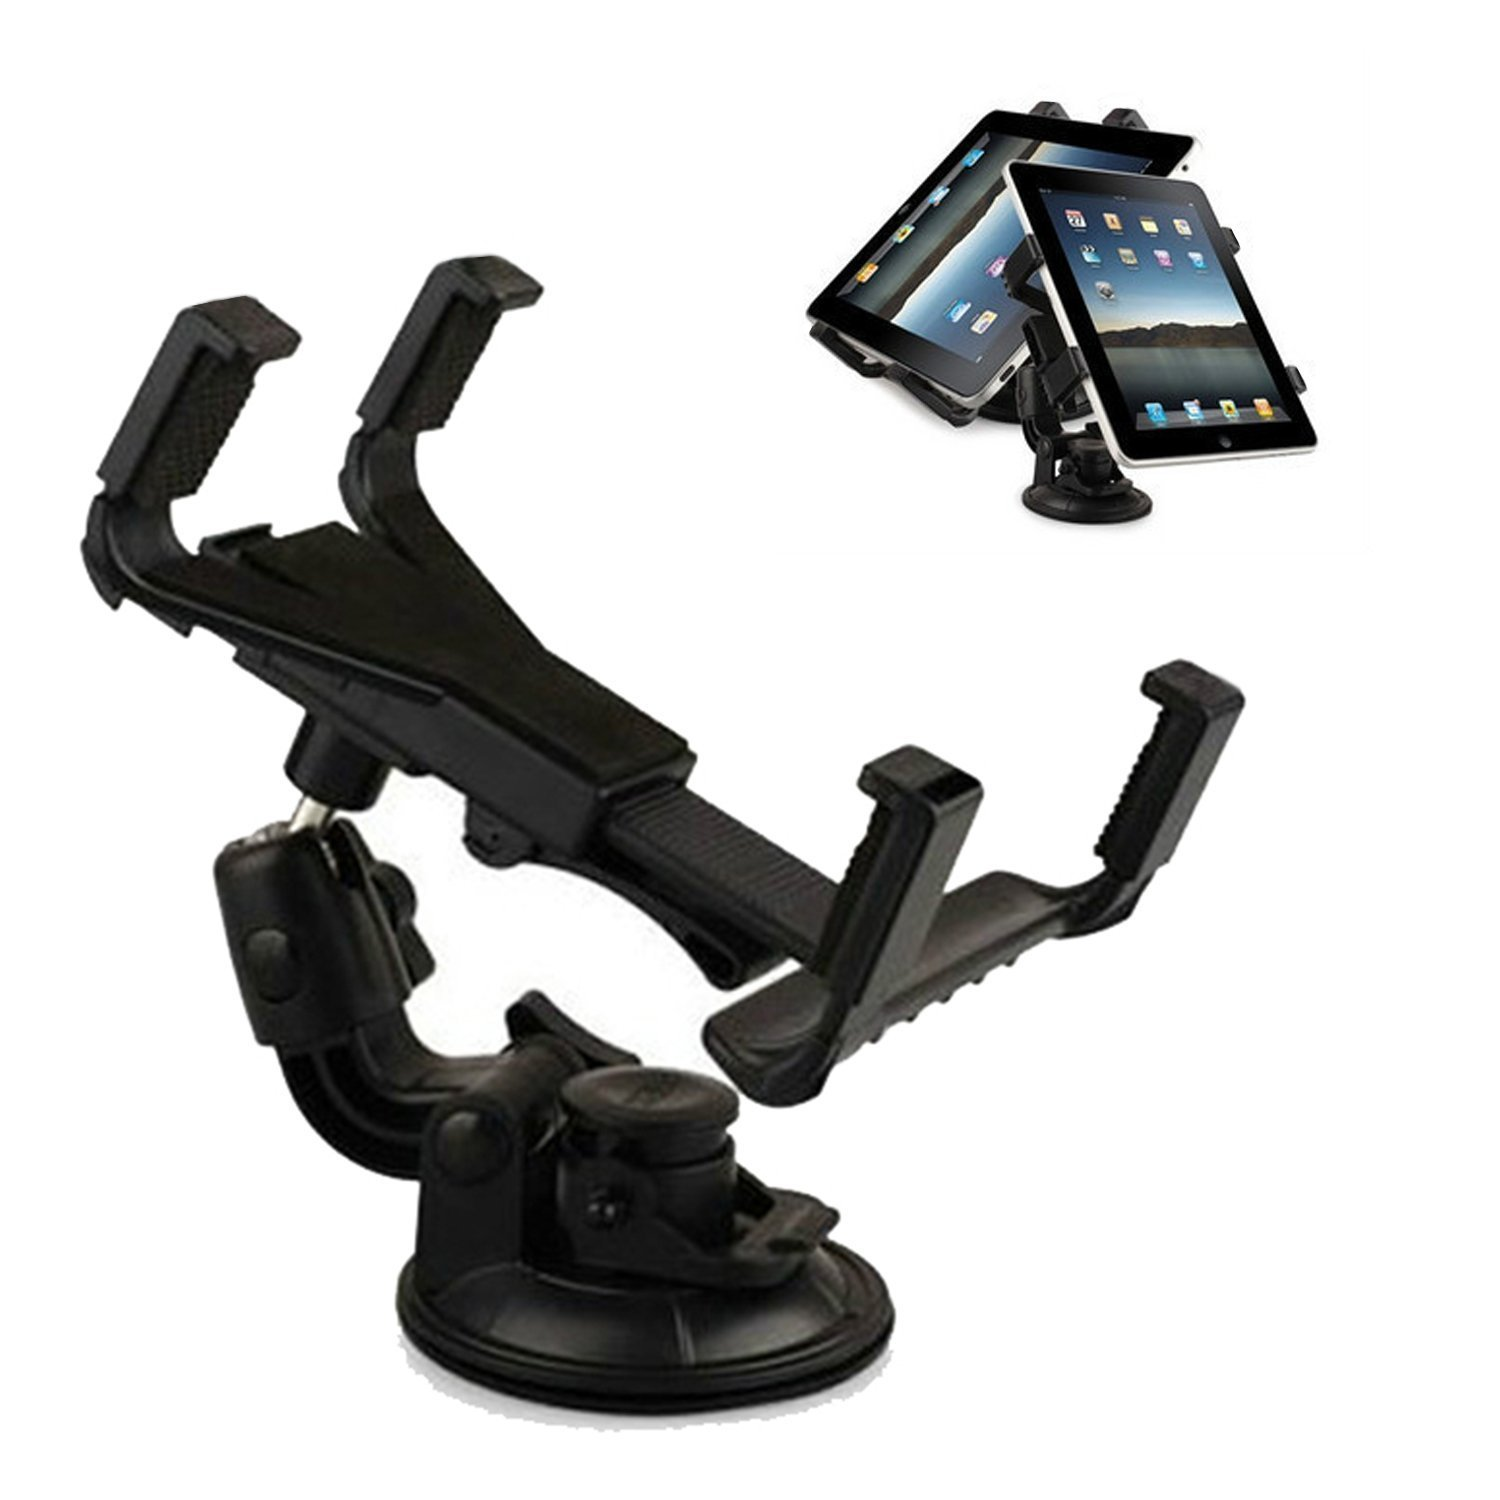 Tsmine Universal Car Mount - Windshield Dashboard Car Mount Holder Cradle for Asus Transformer Pad TF300 / TF300T 10.1-Inch Tablet and All 7 Inch and 10.1 Inch Tablet